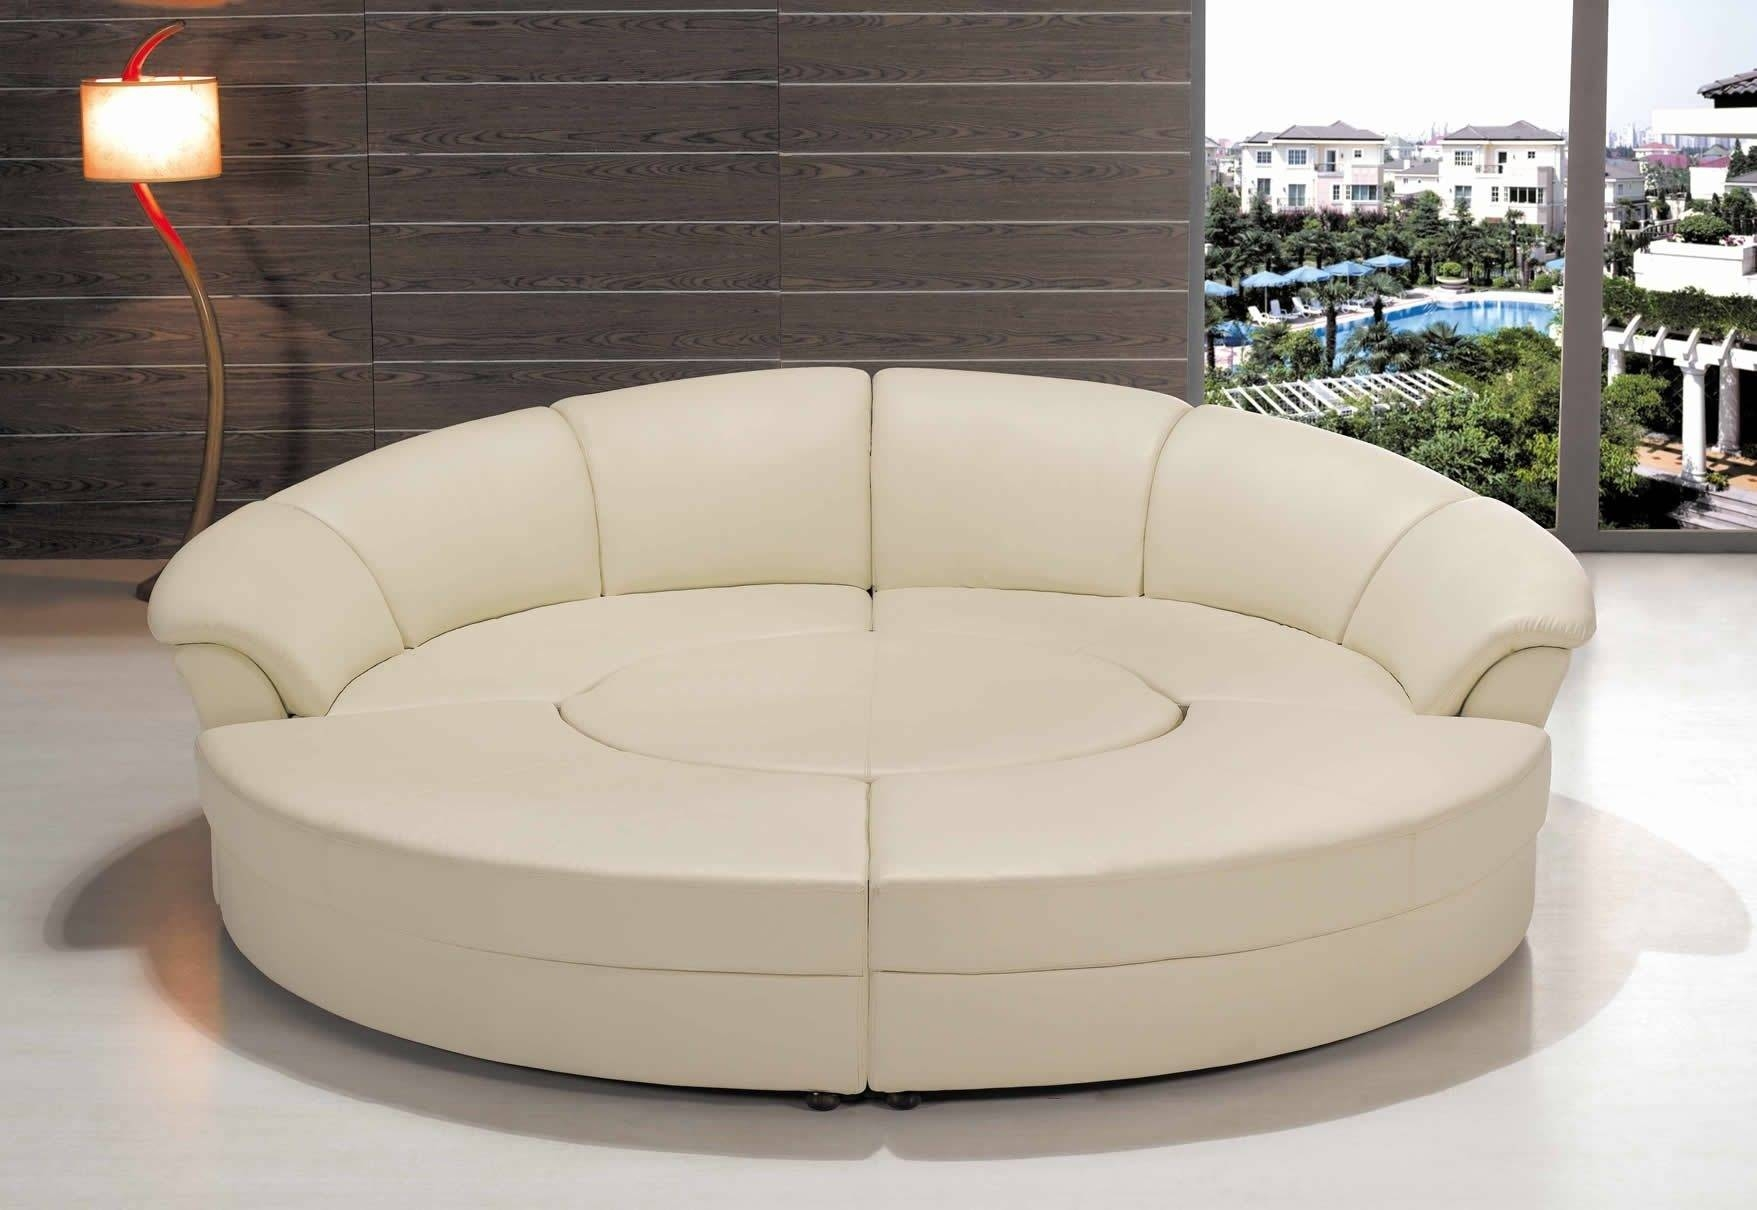 Interior Design. Semi Circle Couch Sofa: Semi Circle Couch Sofa with Circle Sofas (Image 15 of 25)